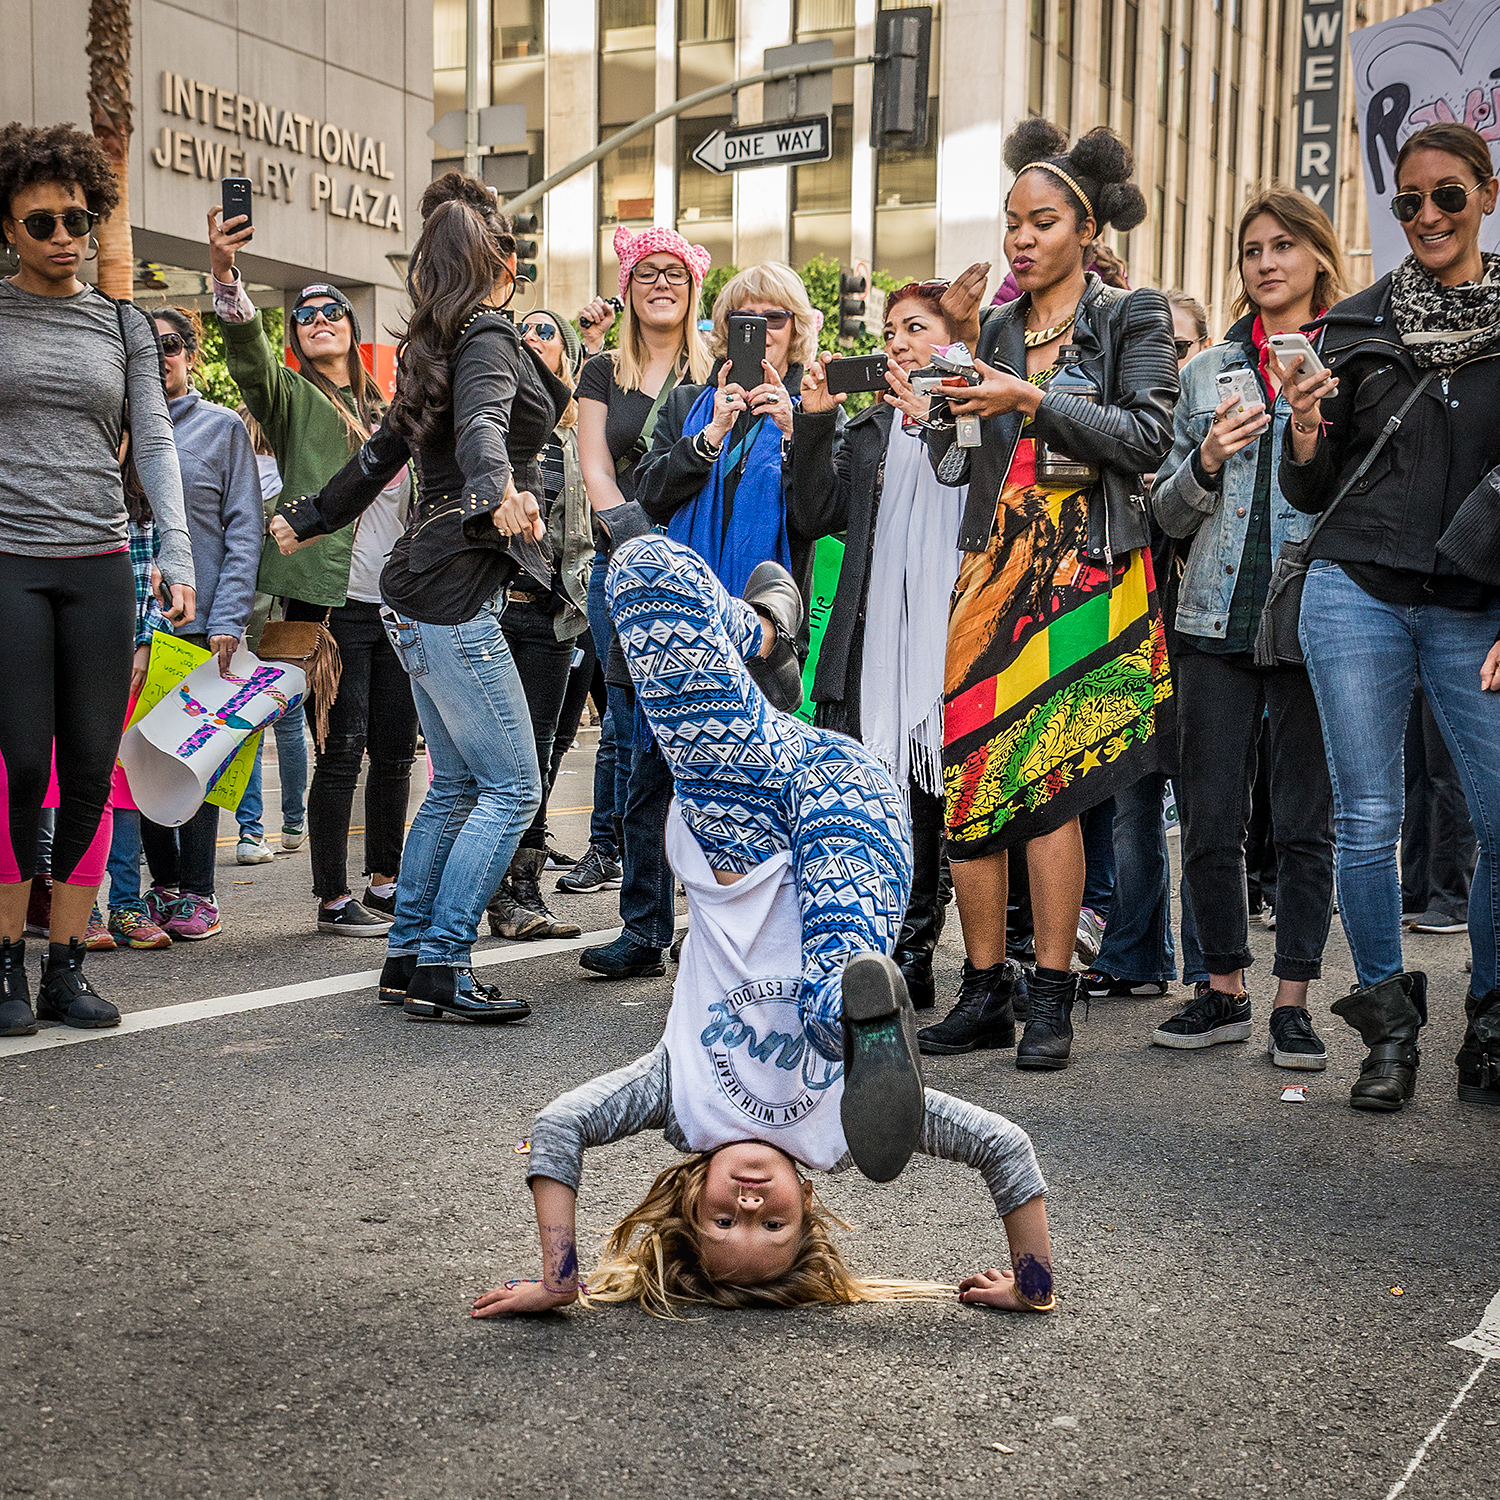 (2017)Los Angeles' route started at Pershing Square, went to City Hall and back again. While 750,000 were slowly making their way from Pershing Square, some were having a dance party.